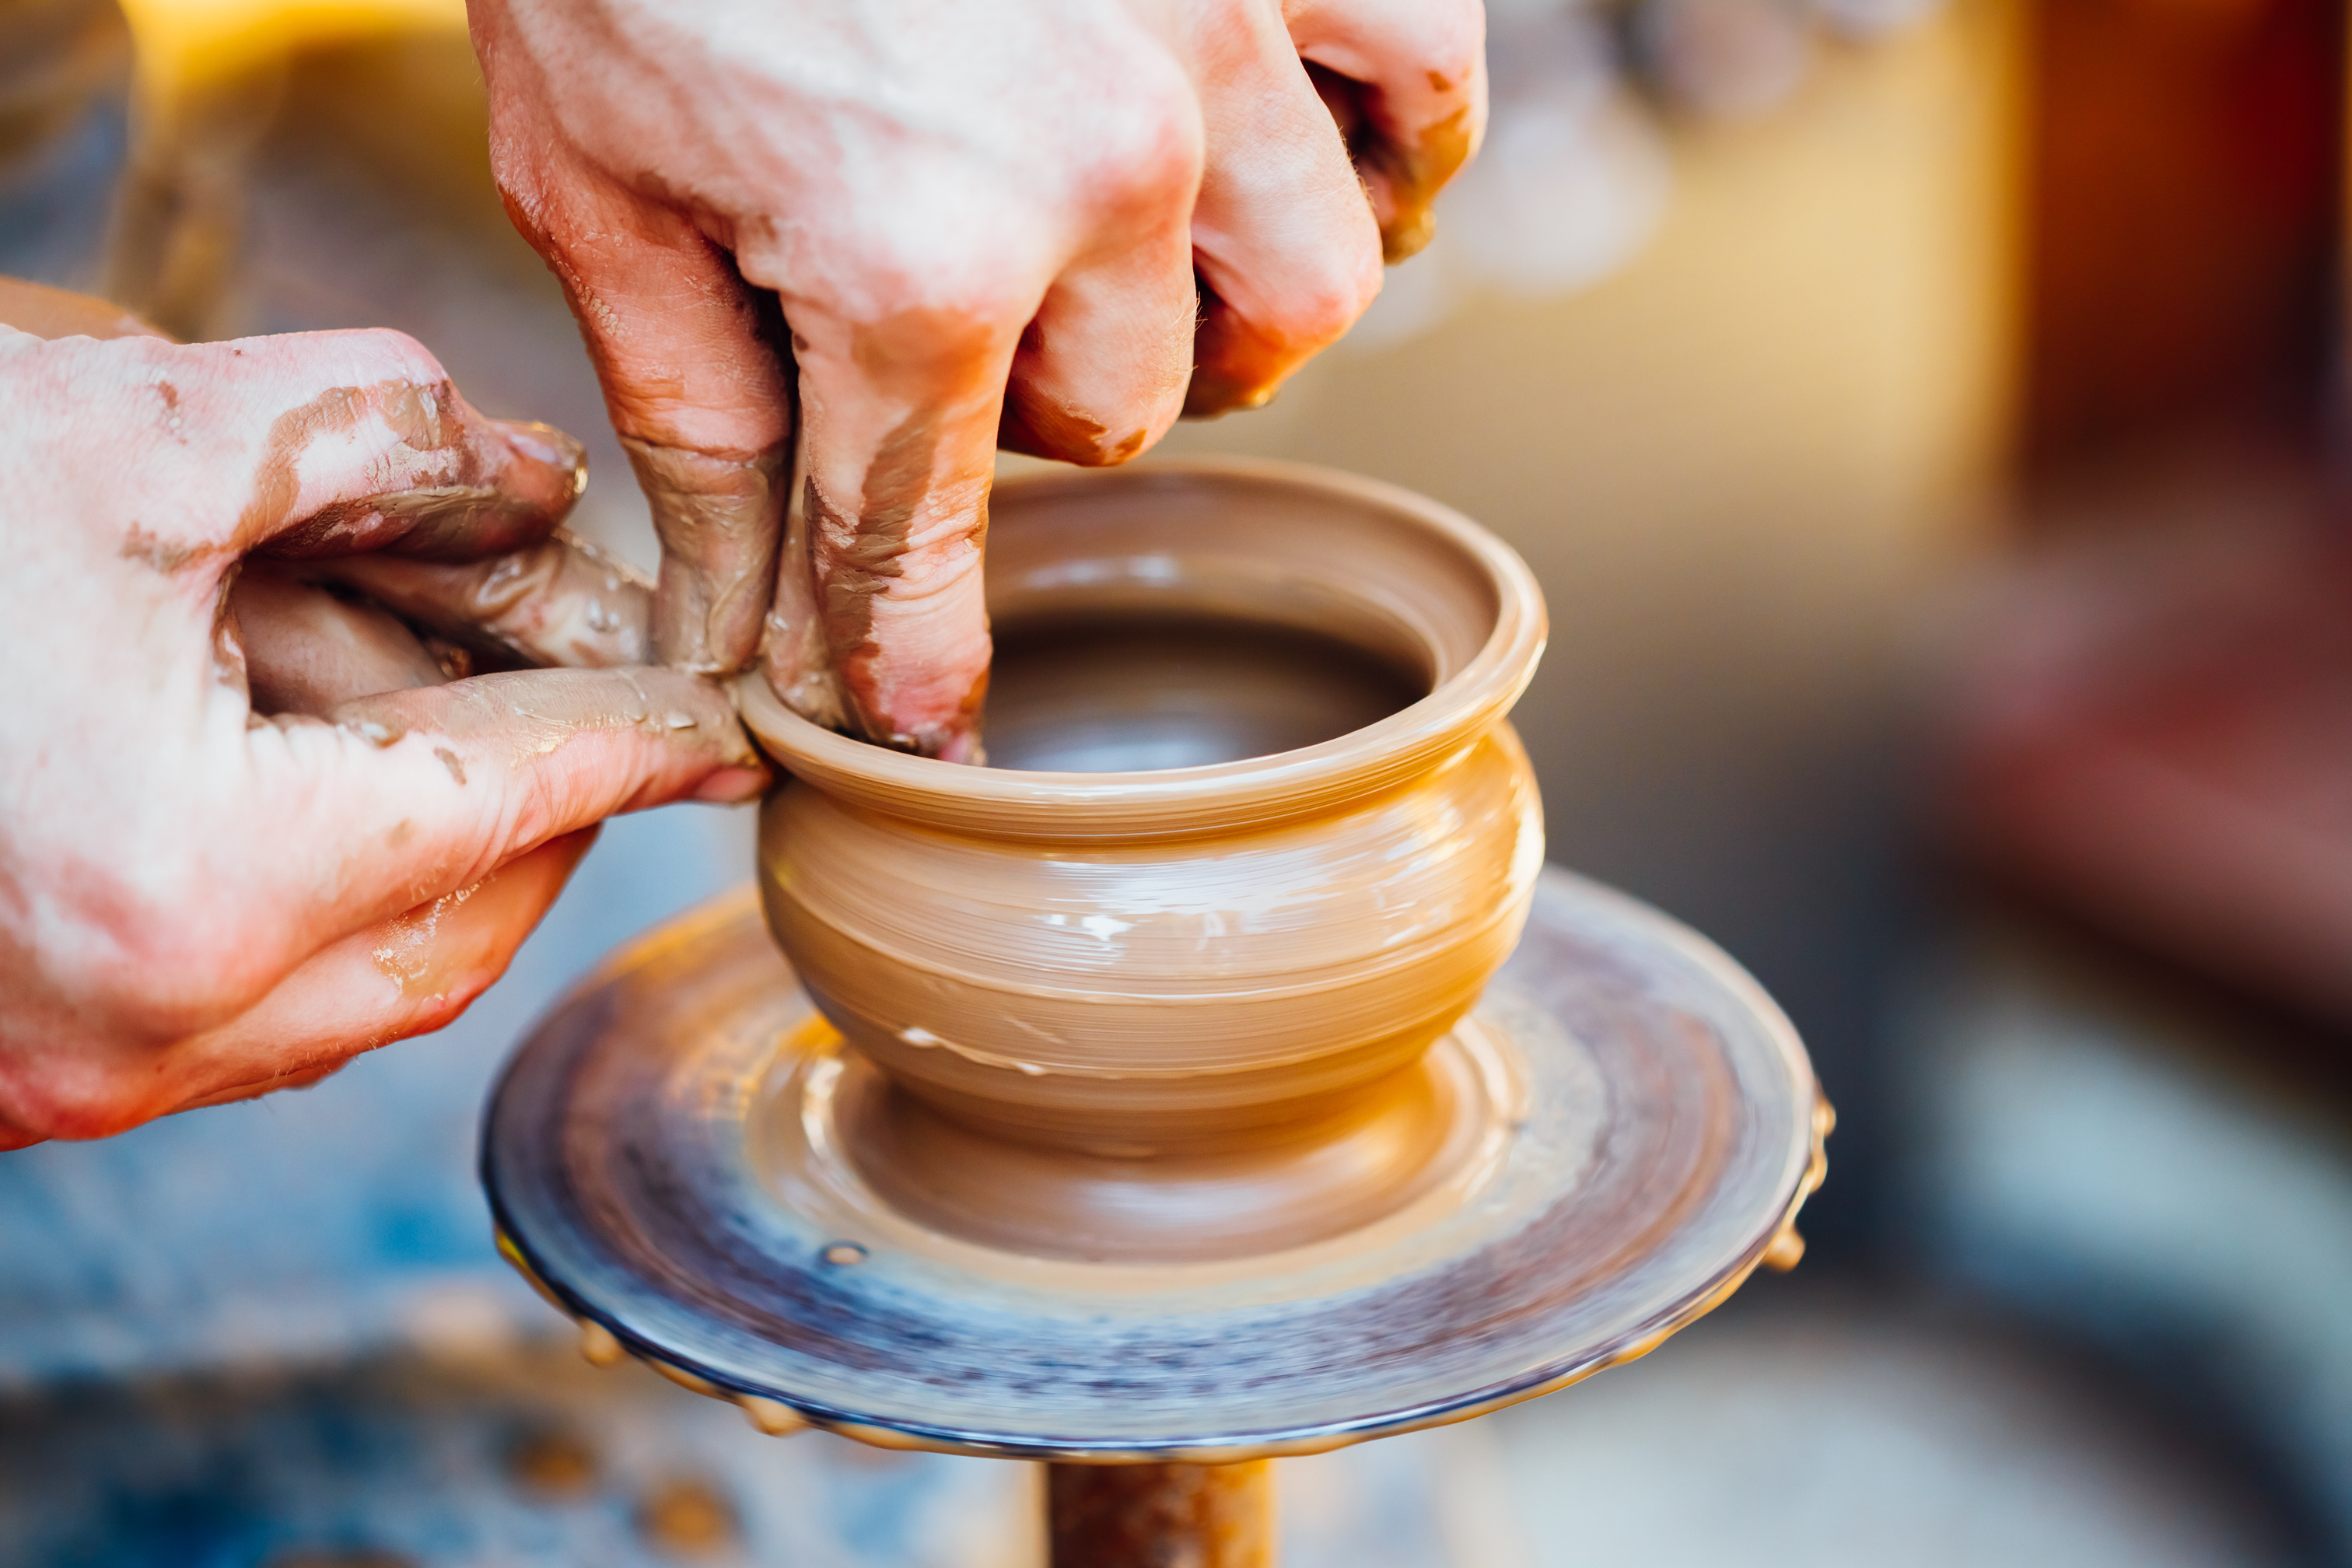 Potter using a Pottery Craft Wheel